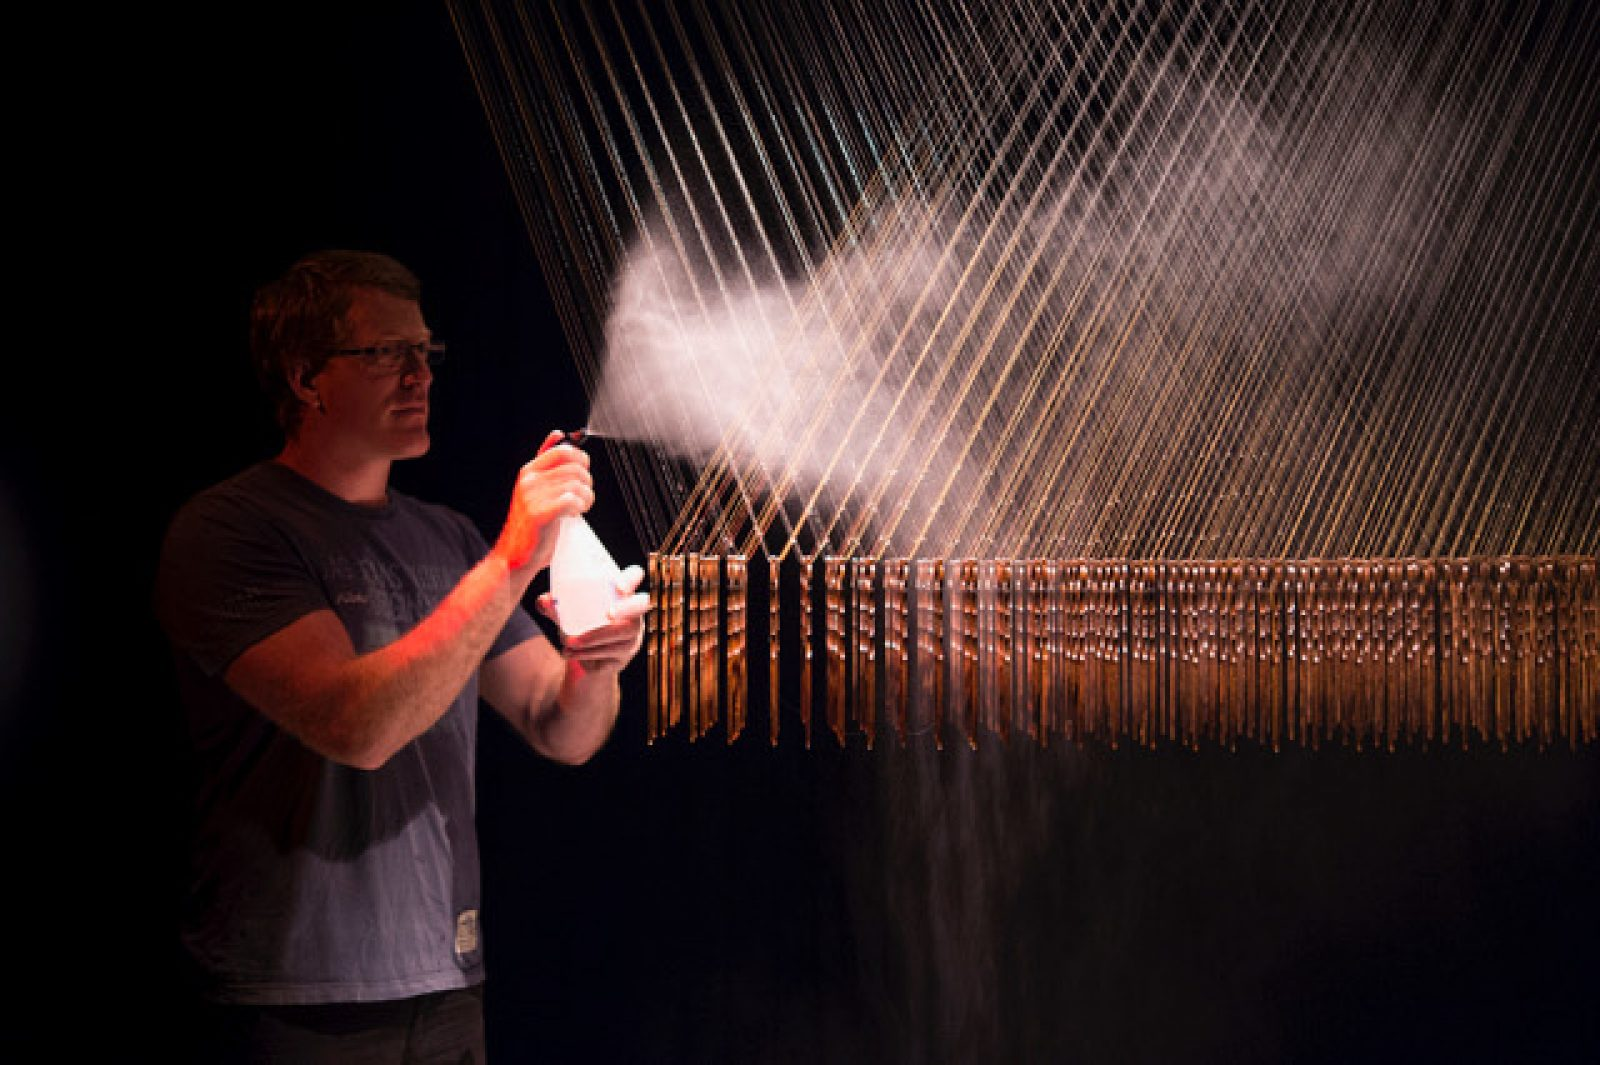 Image: Michael Armstong, Experiment, 2019. Photo: Coutesy of the artist